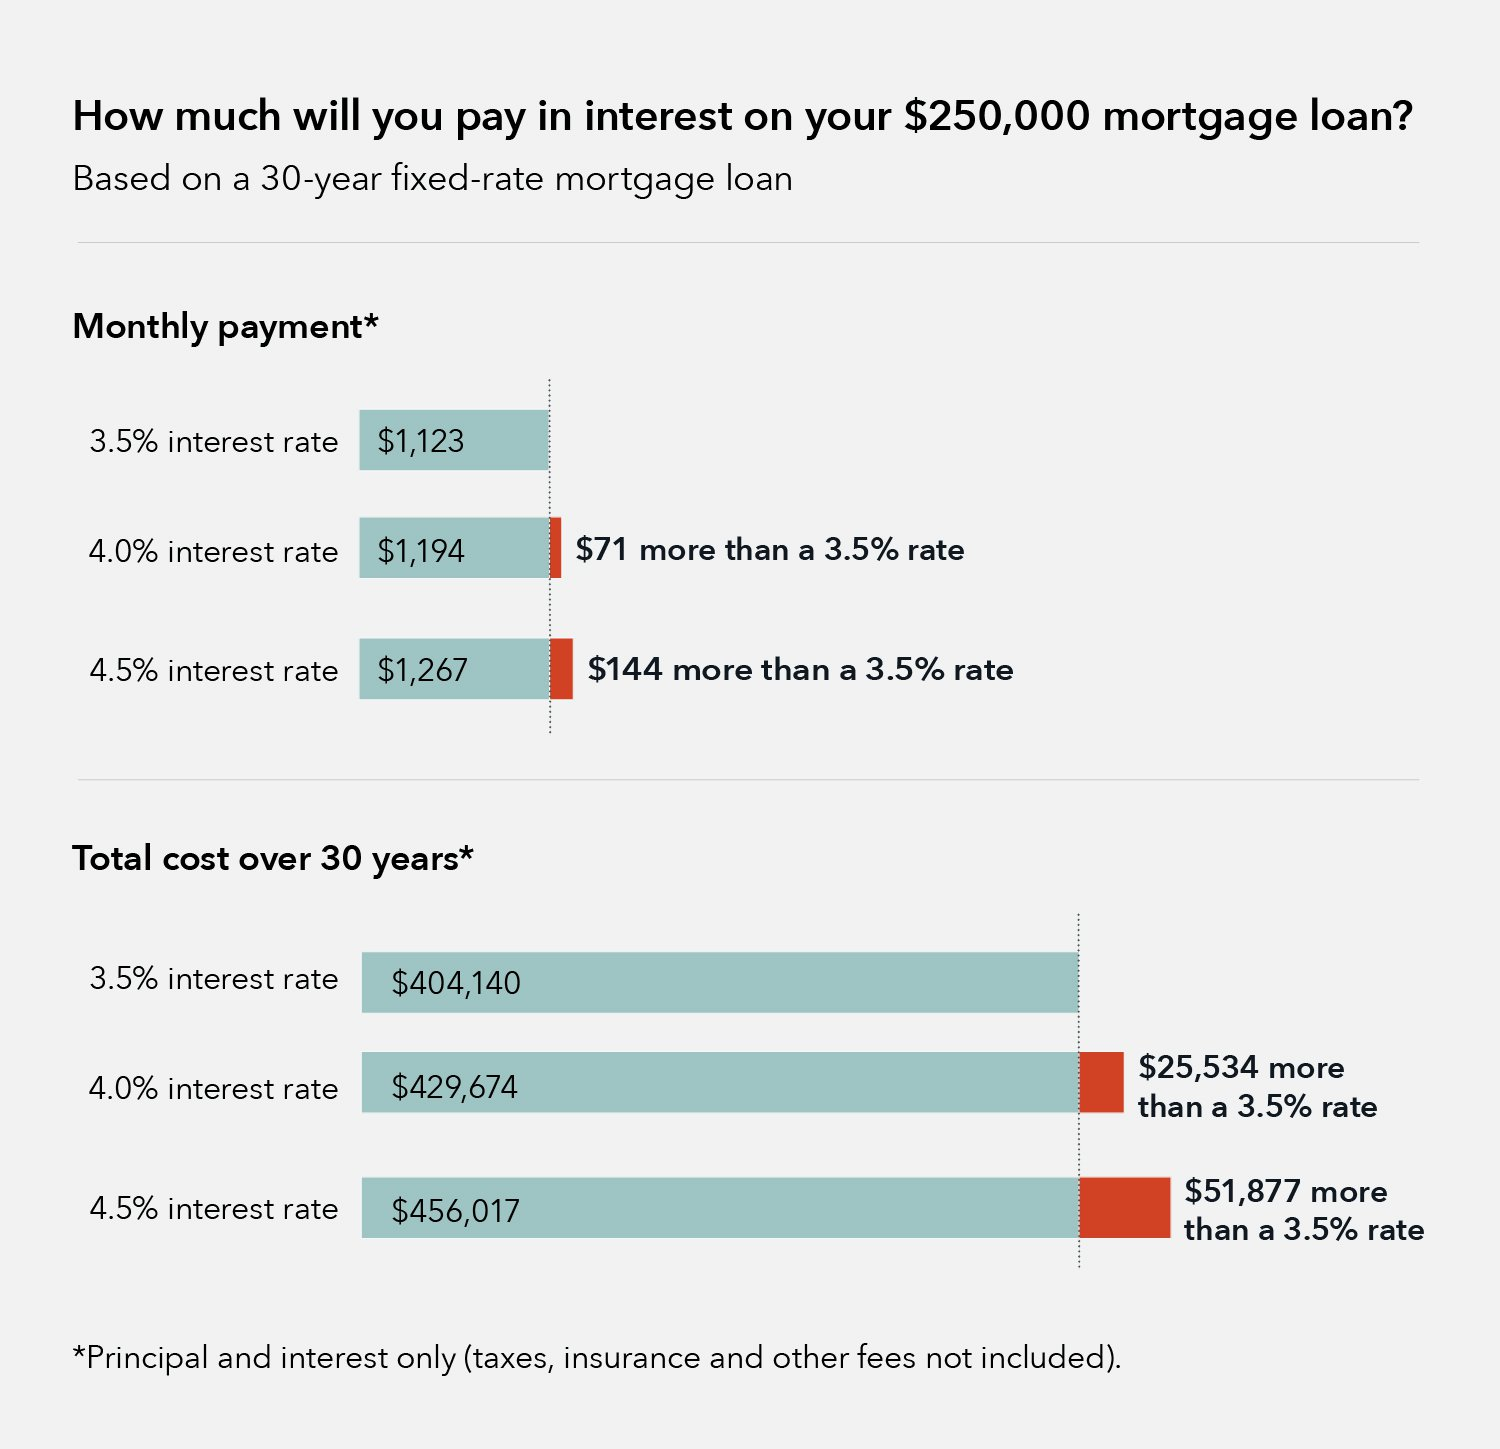 How much will you pay in interest on your $250,000 mortgage loan?